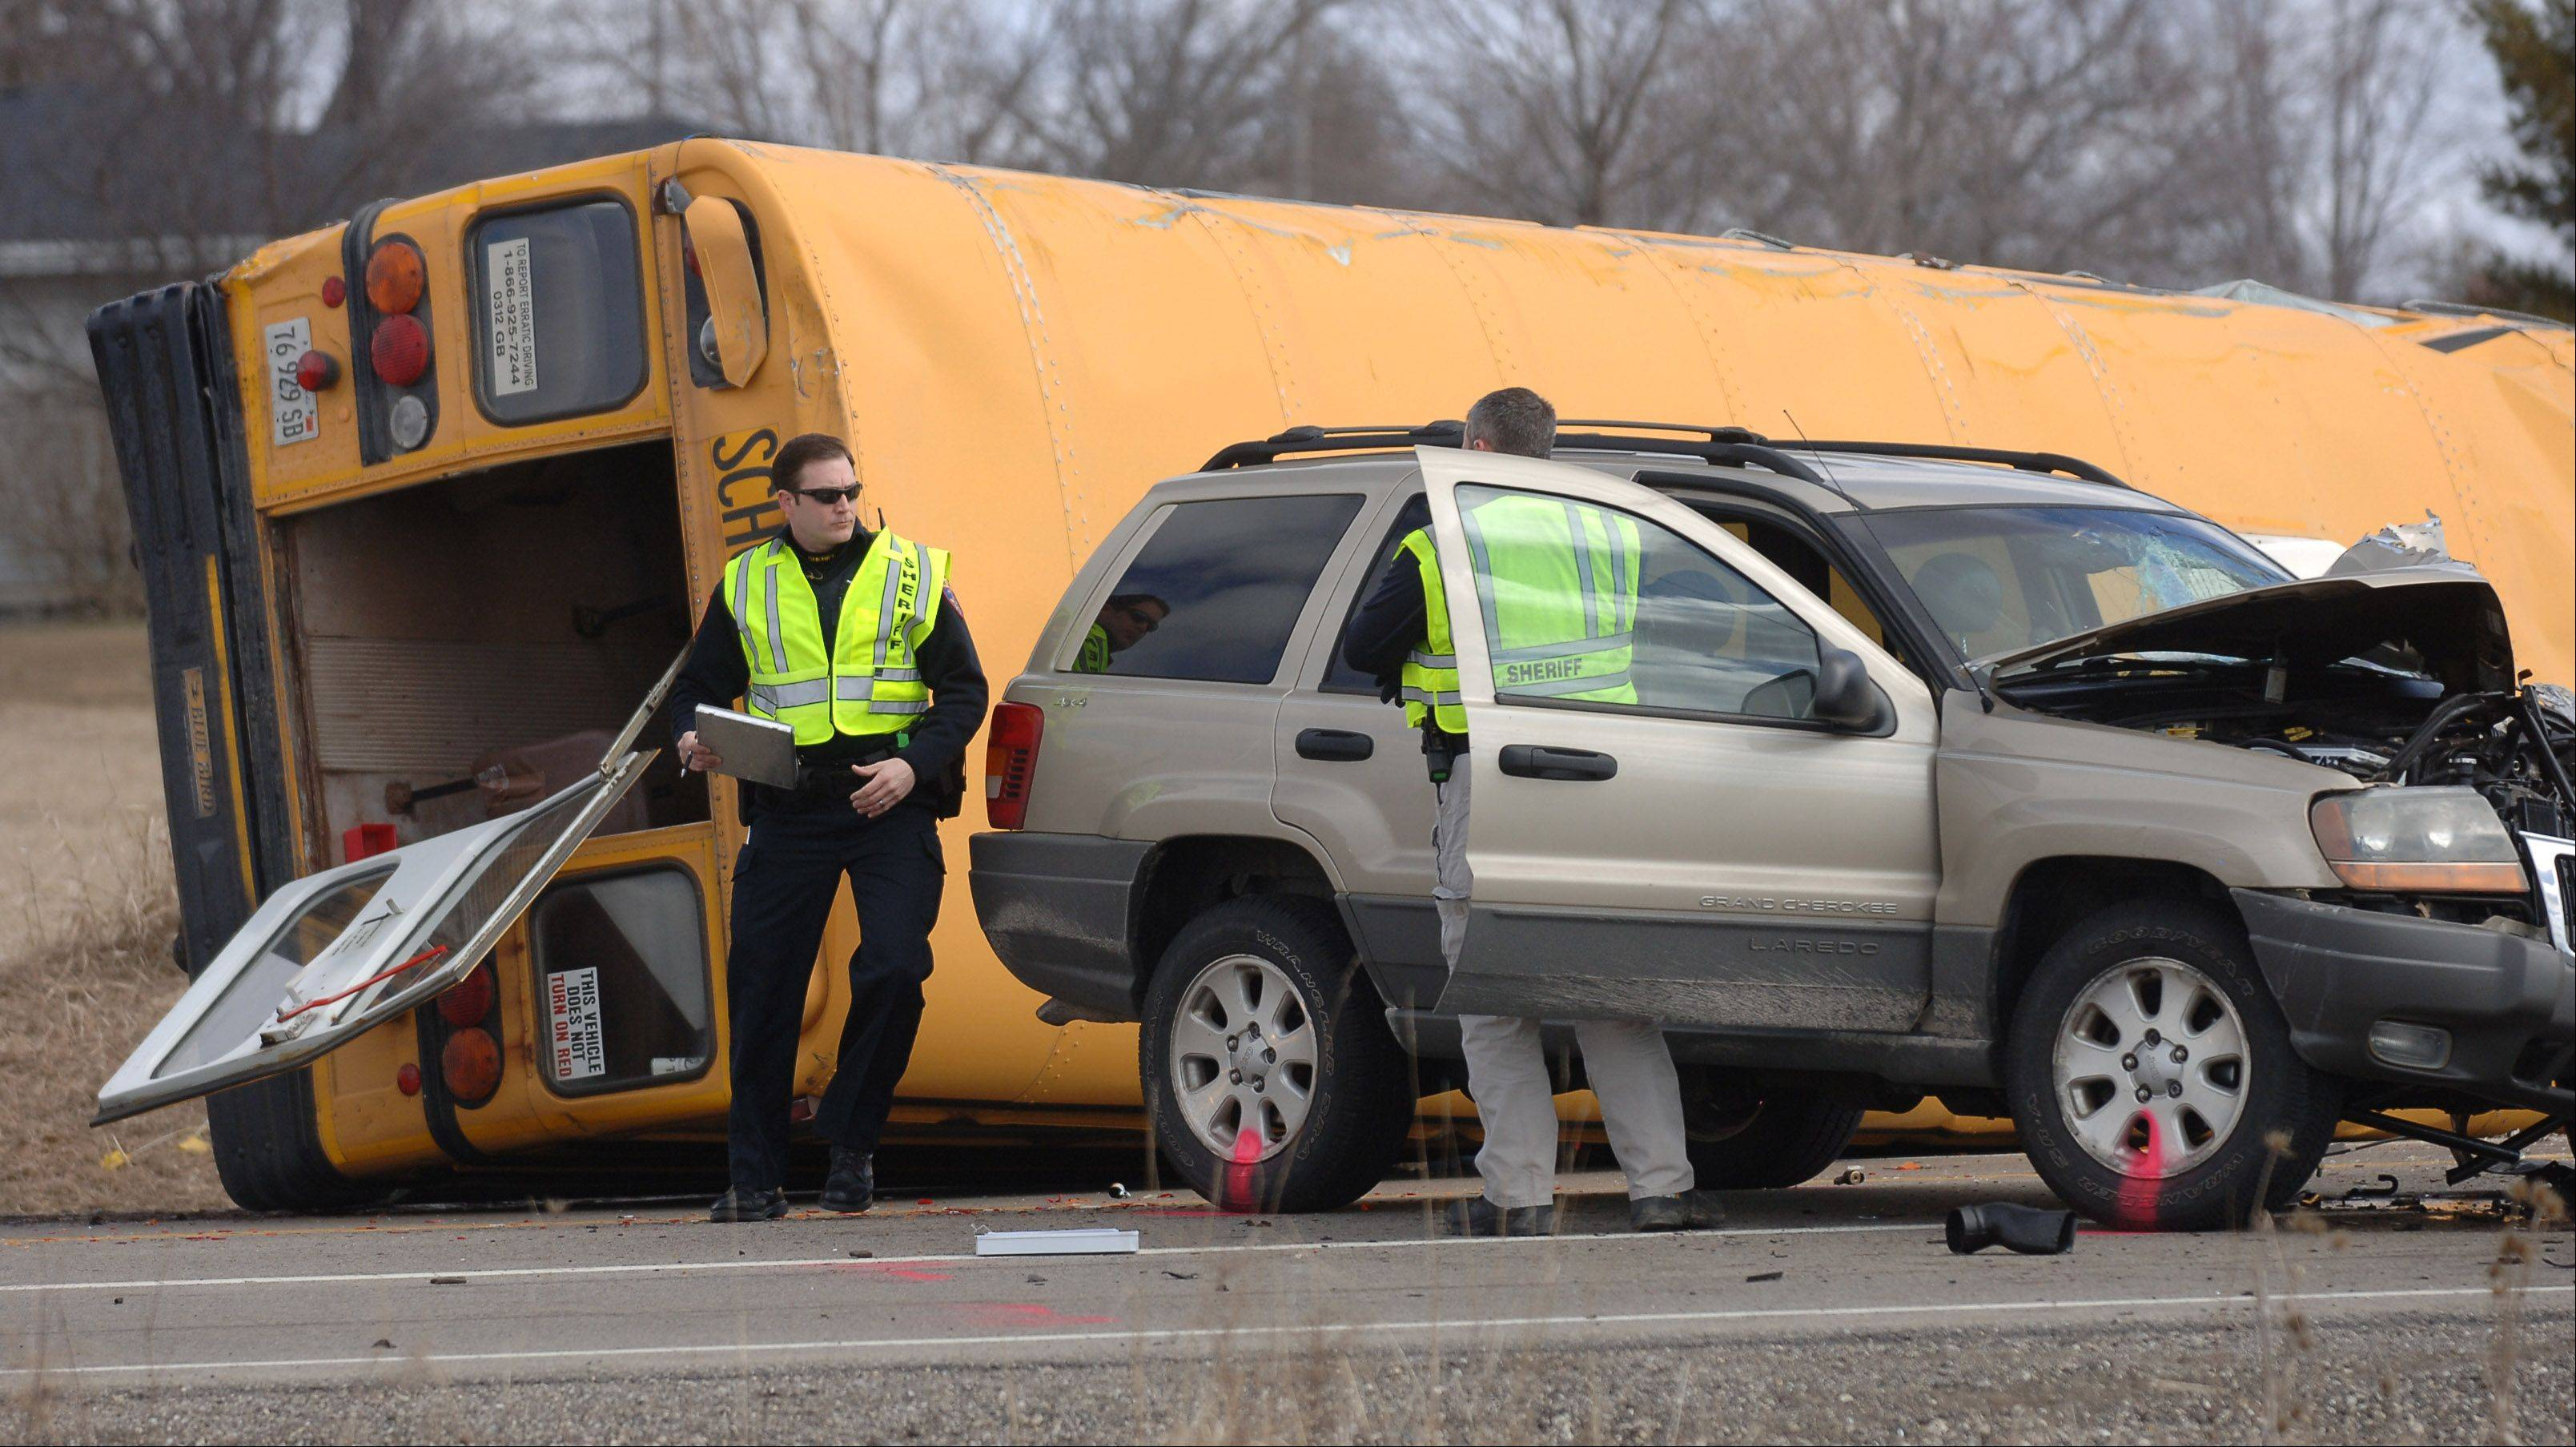 A school bus lies on its side as police officials investigate the crash scene at Route 173 and N. Kilbourne Road near Wadsworth Friday morning.